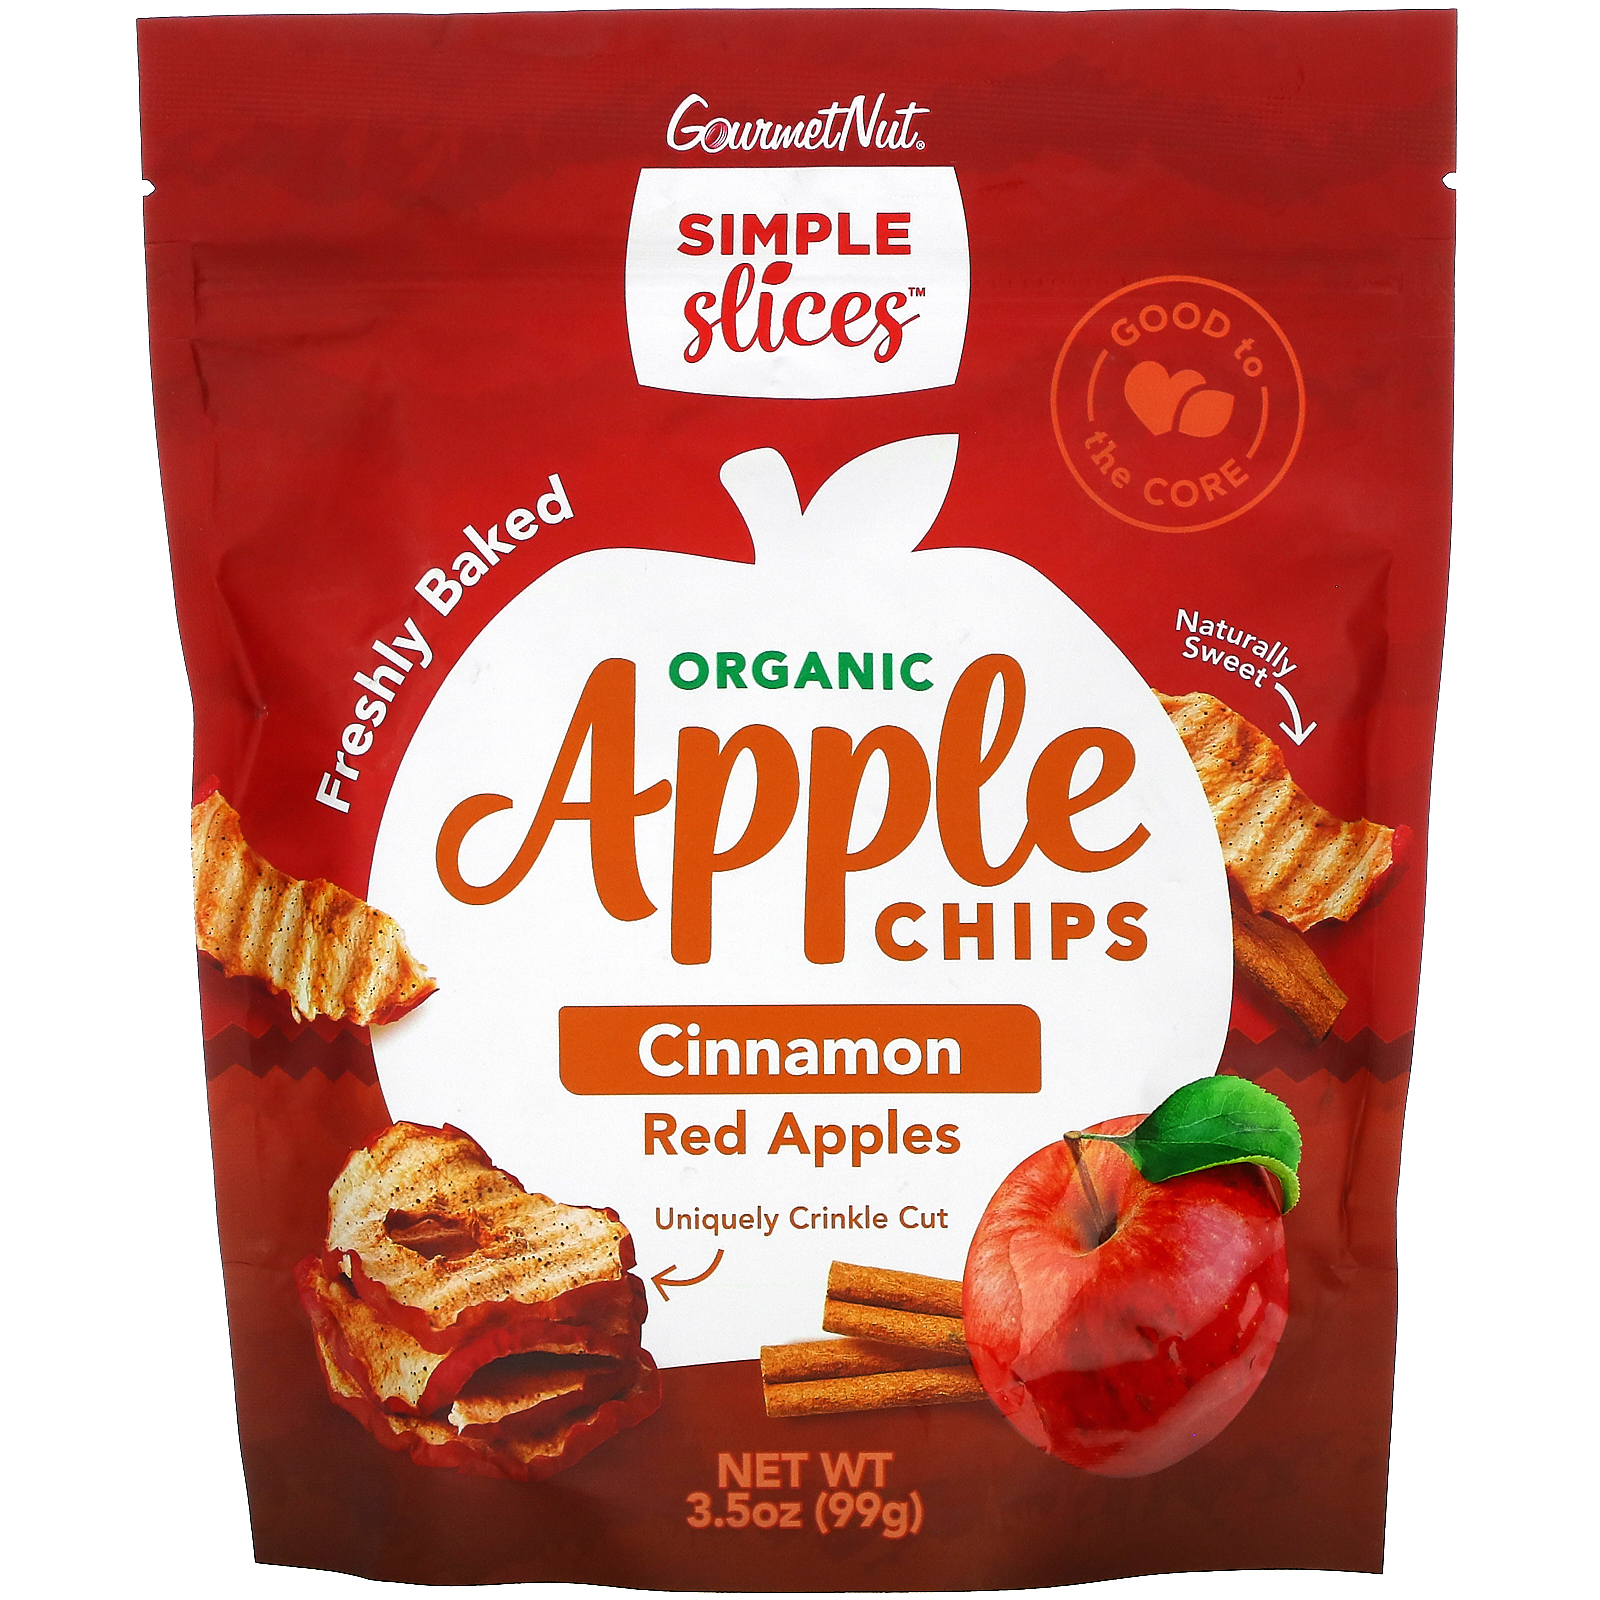 Simple Slices, Organic Apple Chips, Cinnamon Red Apples, 3.5 oz (99 g)